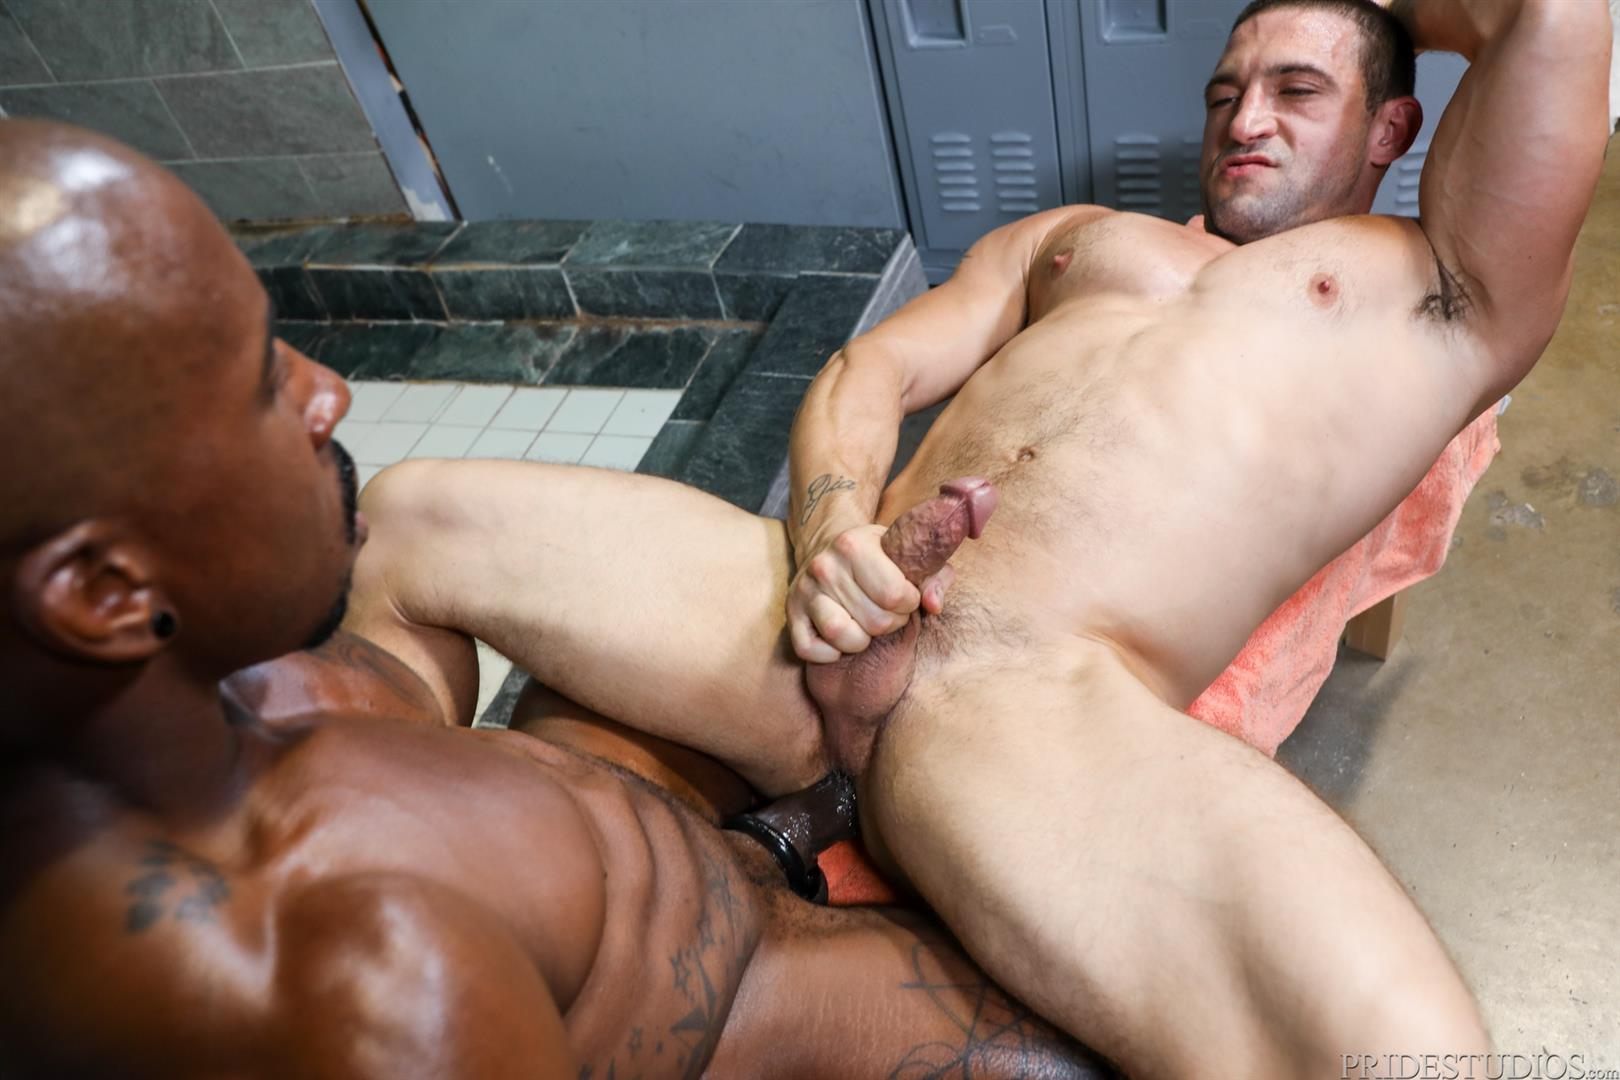 Extra-Big-Dicks-Max-Konnor-and-Ceasar-Ventura-Interracial-Bareback-Fucking-Big-Black-Cock-13 Cruising For Bareback Big Black Dick At The Gym